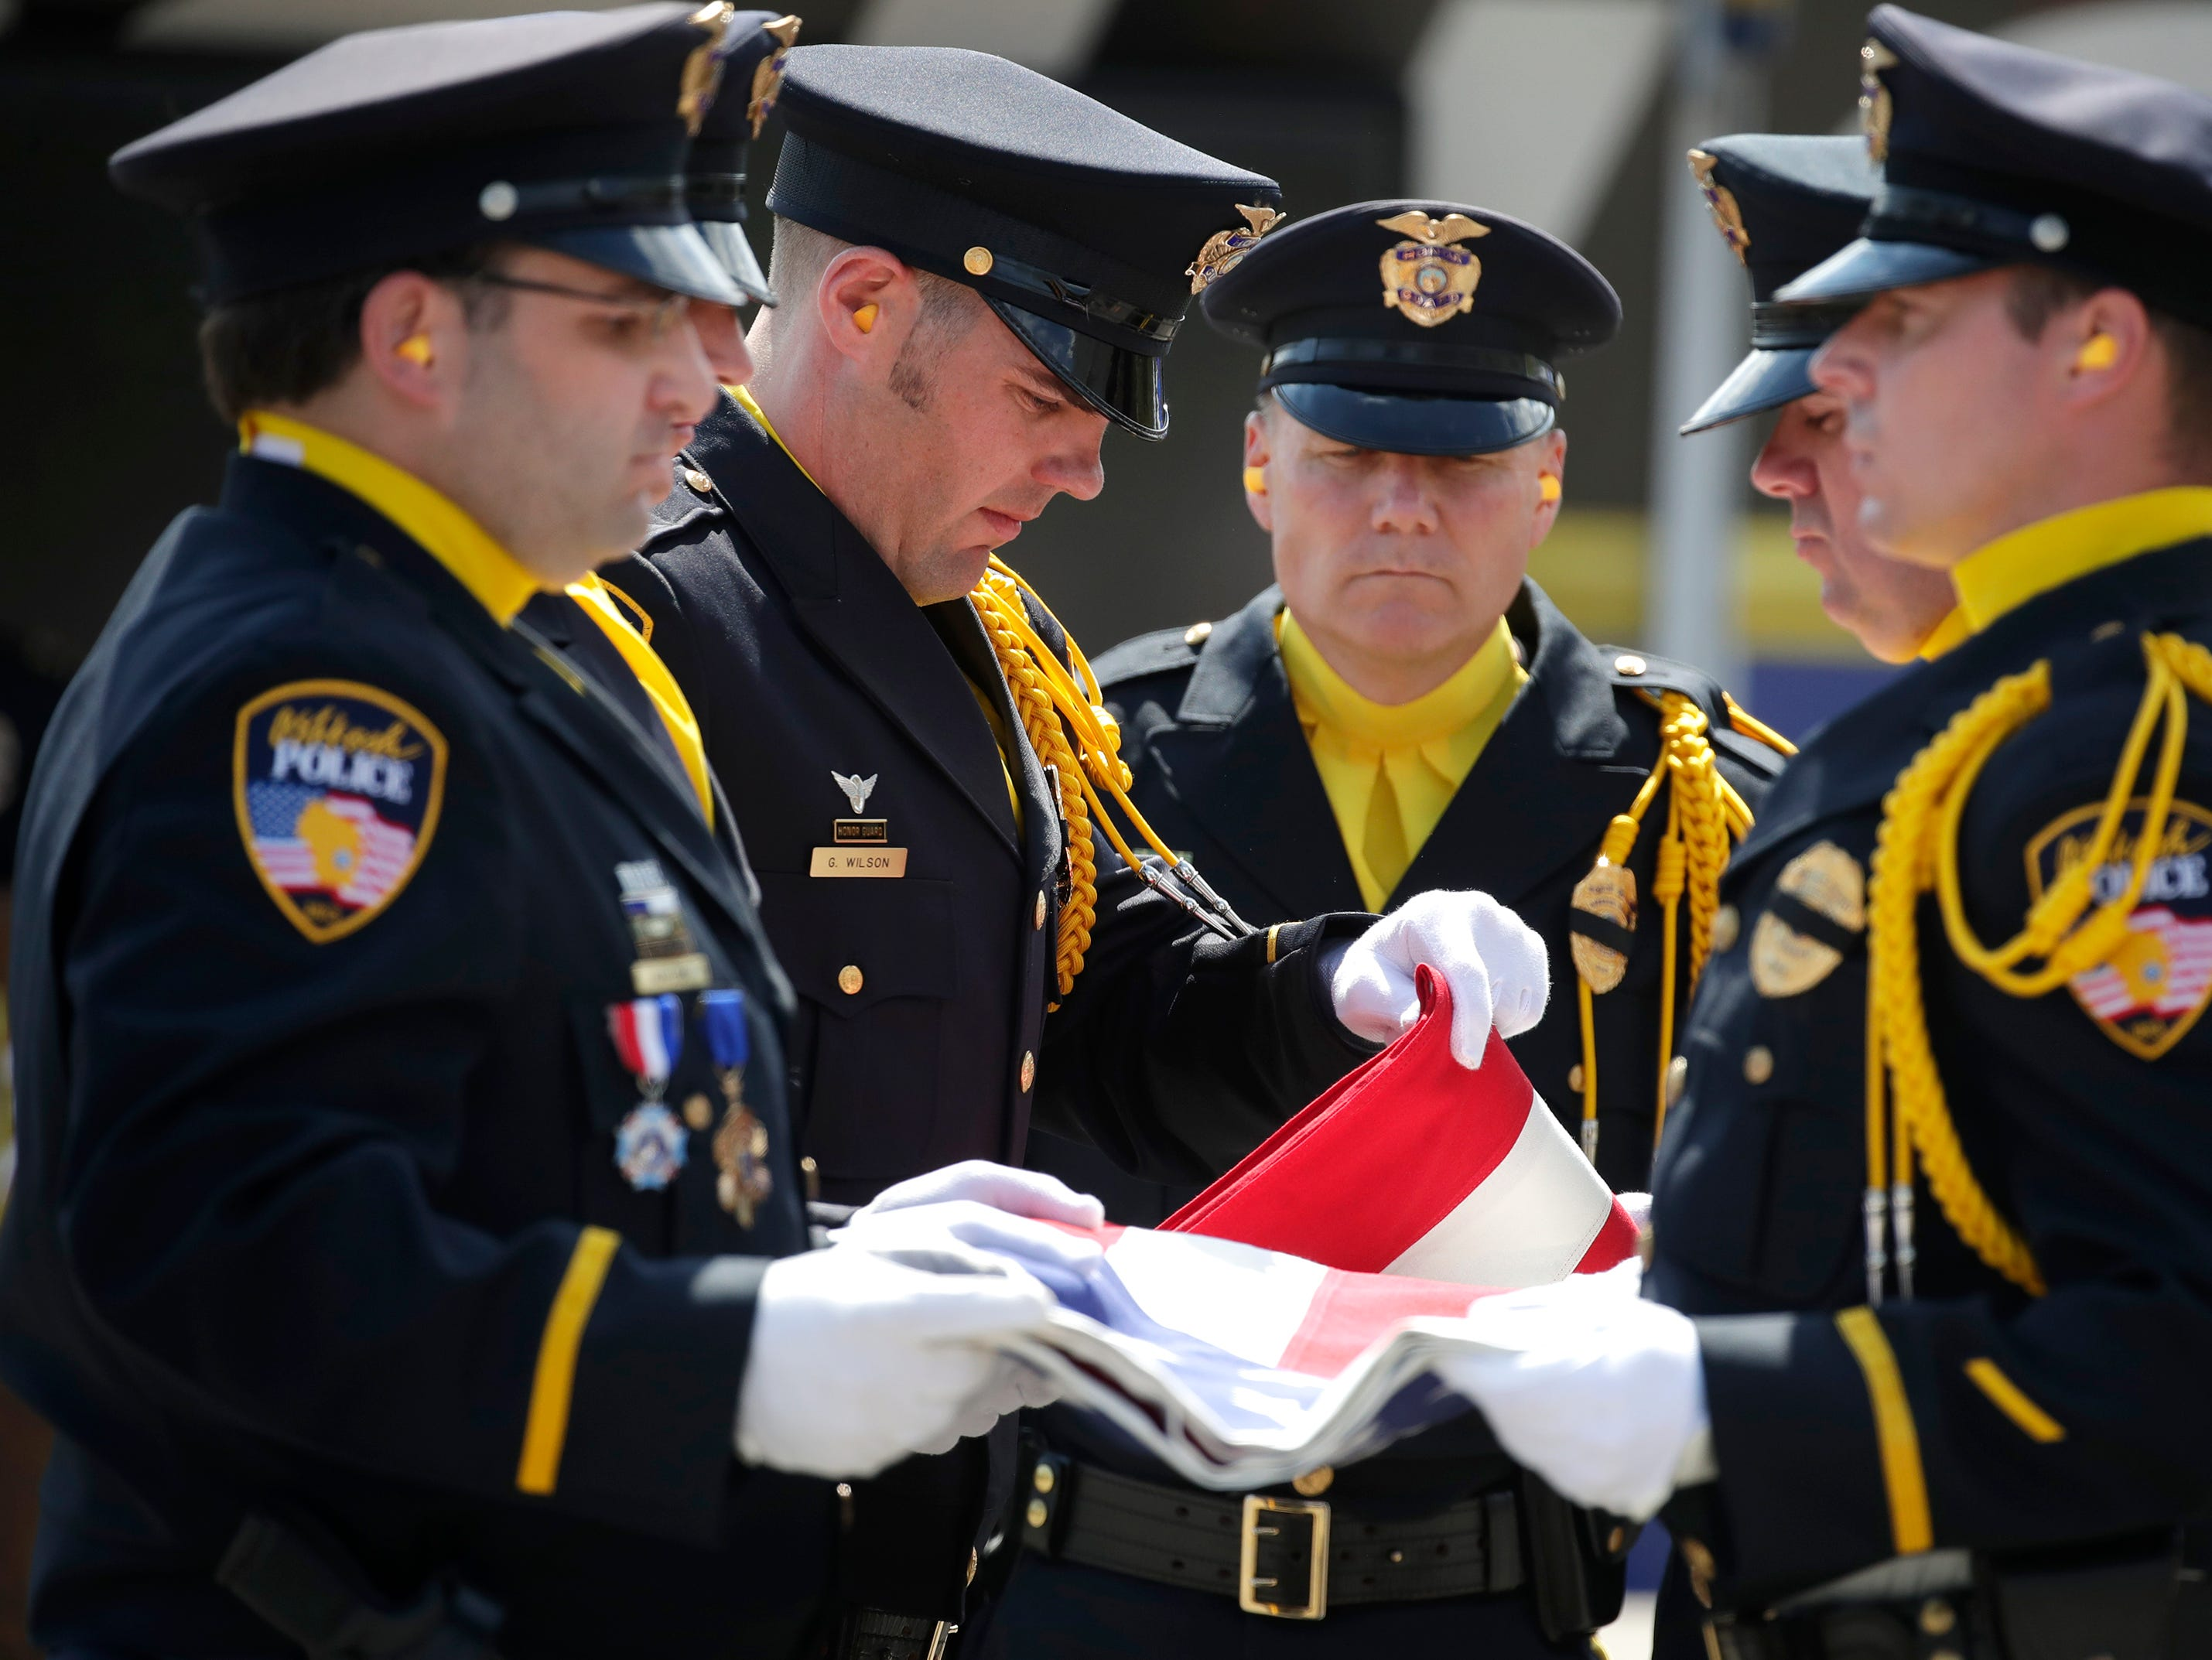 The Oshkosh Police Department Honor Guard folds the flag during their Law Enforcement Memorial Ceremony Wednesday, May 15, 2019, at the Oshkosh Police Department in Oshkosh, Wis. Danny Damiani/USA TODAY NETWORK-Wisconsin